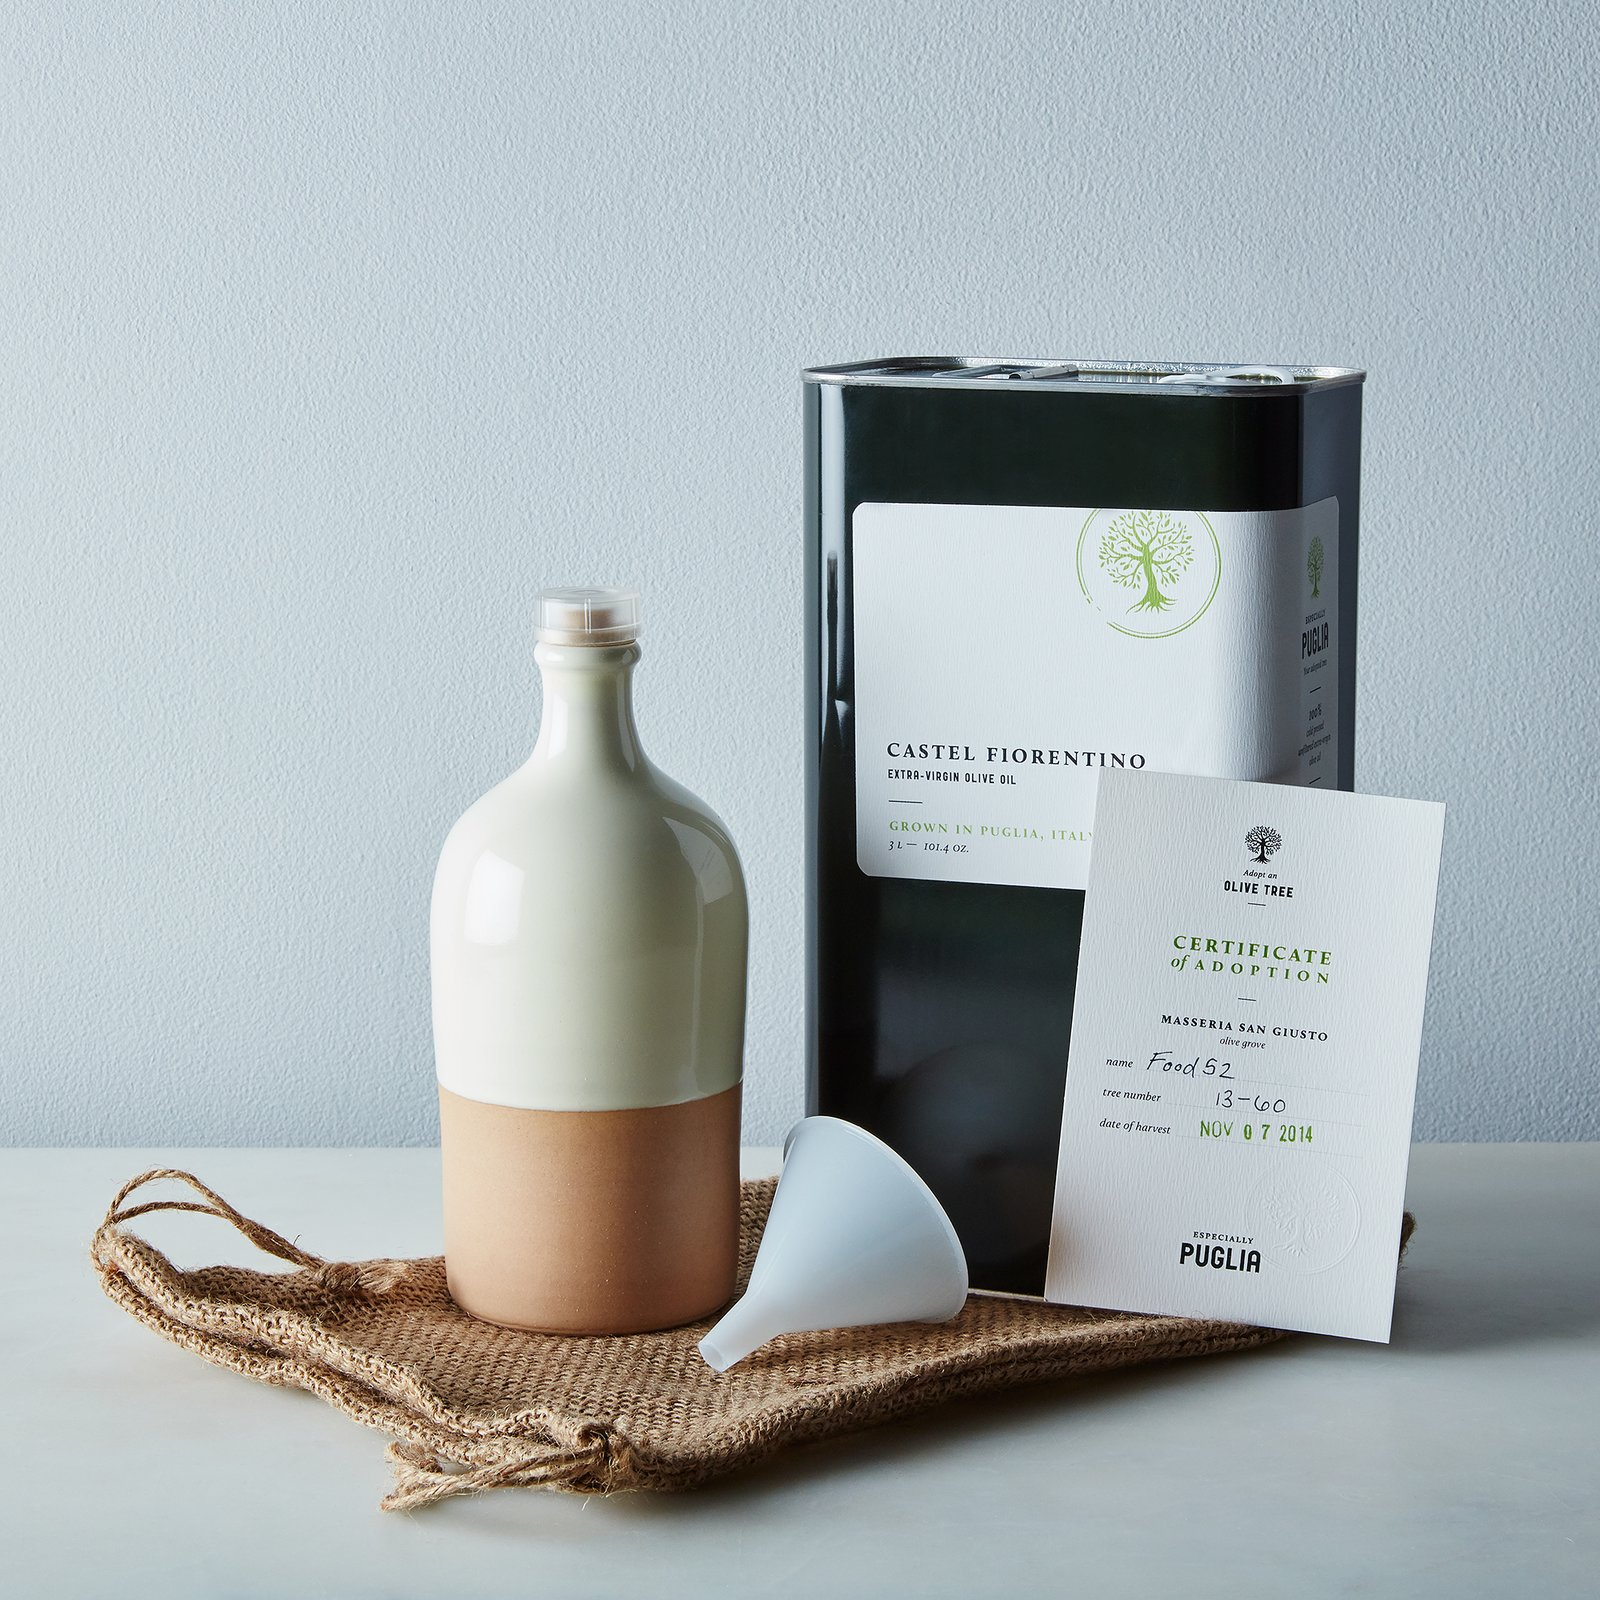 Photo 1 of 1 in Adopt an Olive Tree Gift Box + Subscription